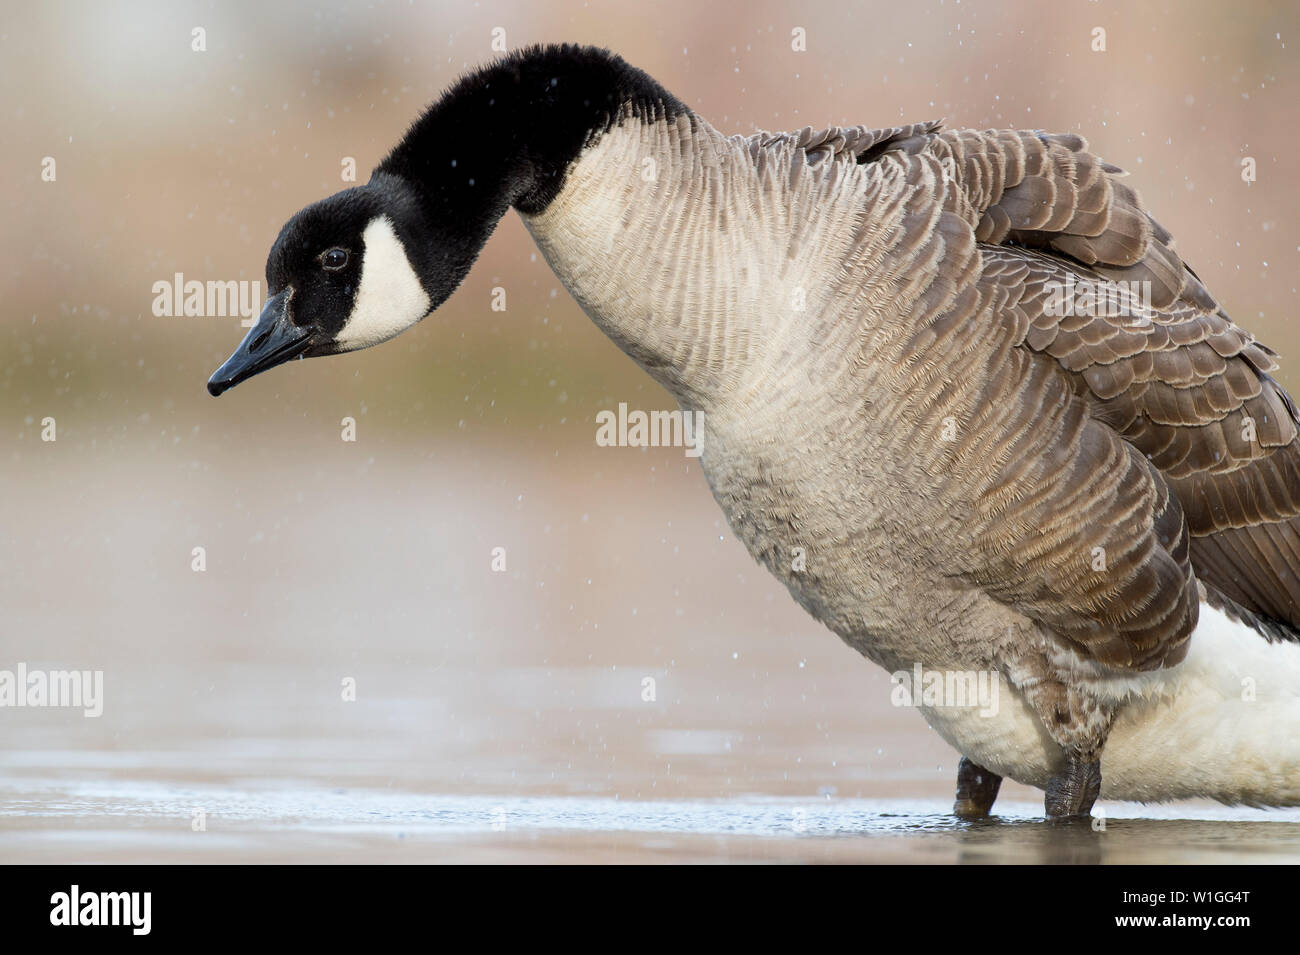 A Canada Goose shakes out its feathers after a bath and